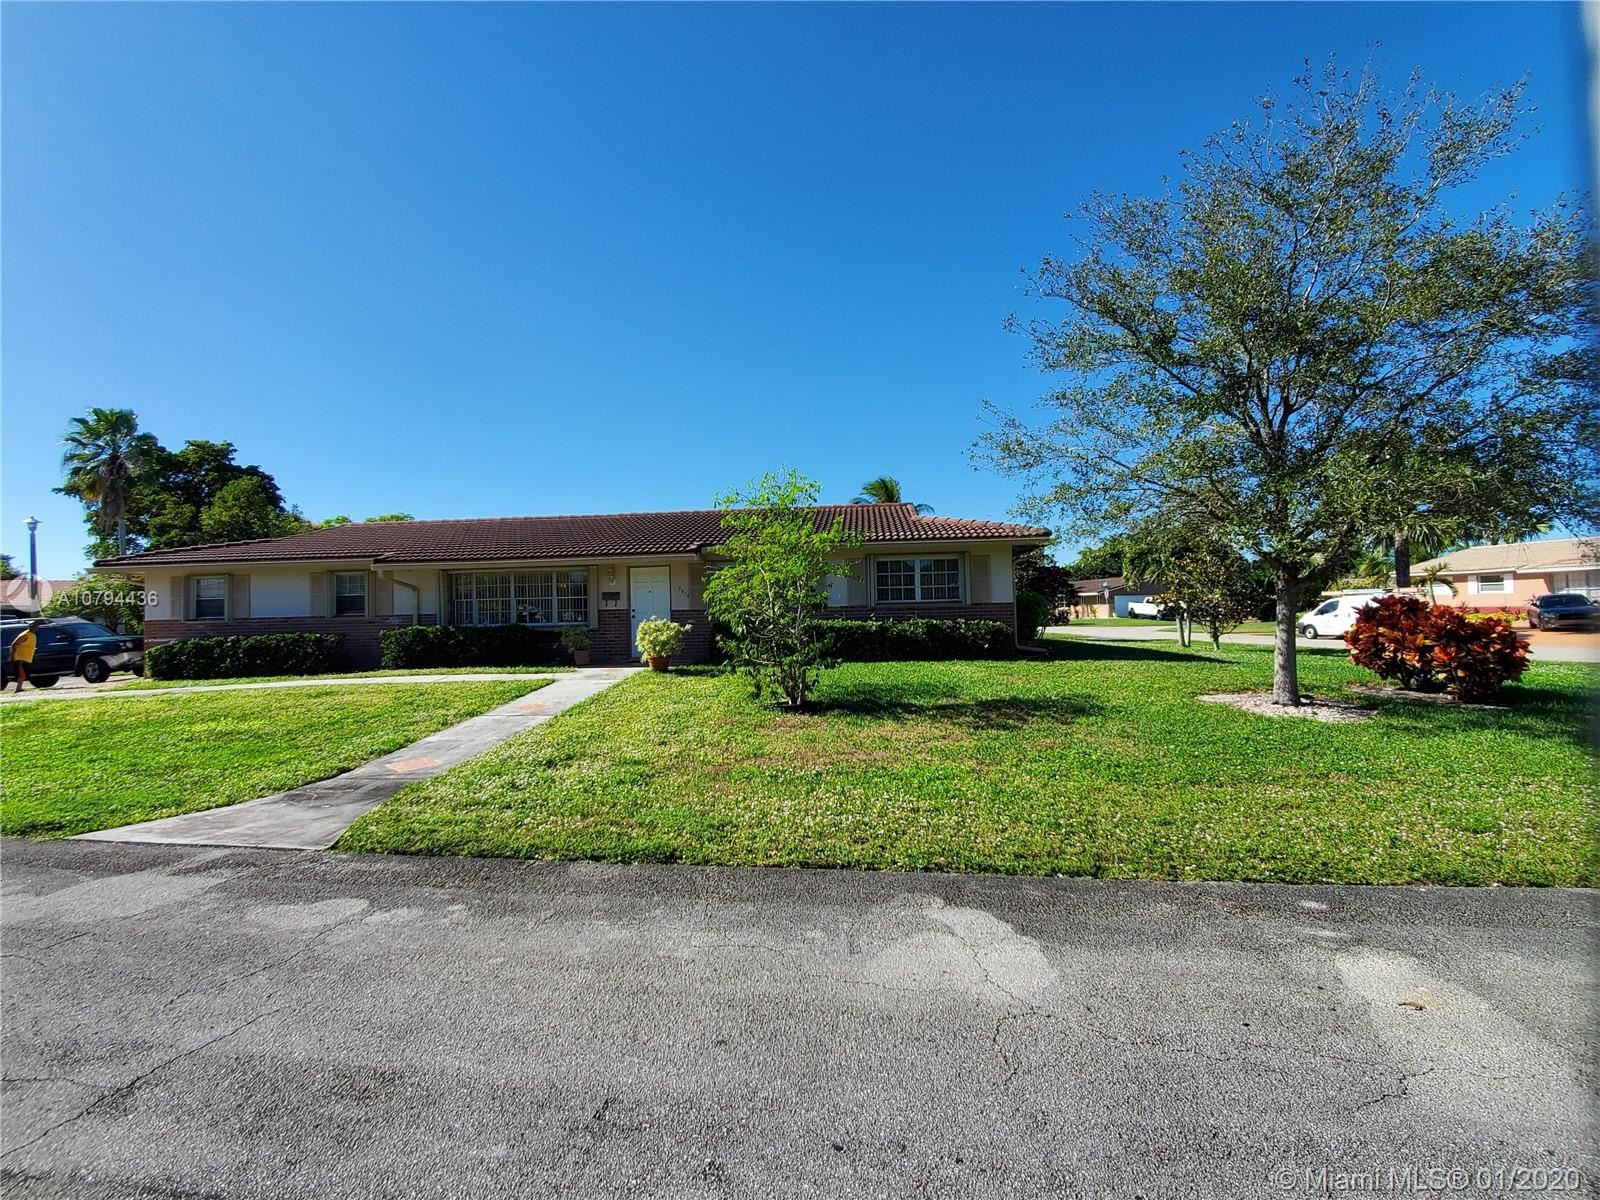 7514 NW 41st St, Coral Springs, FL 33065 - #: A10794436